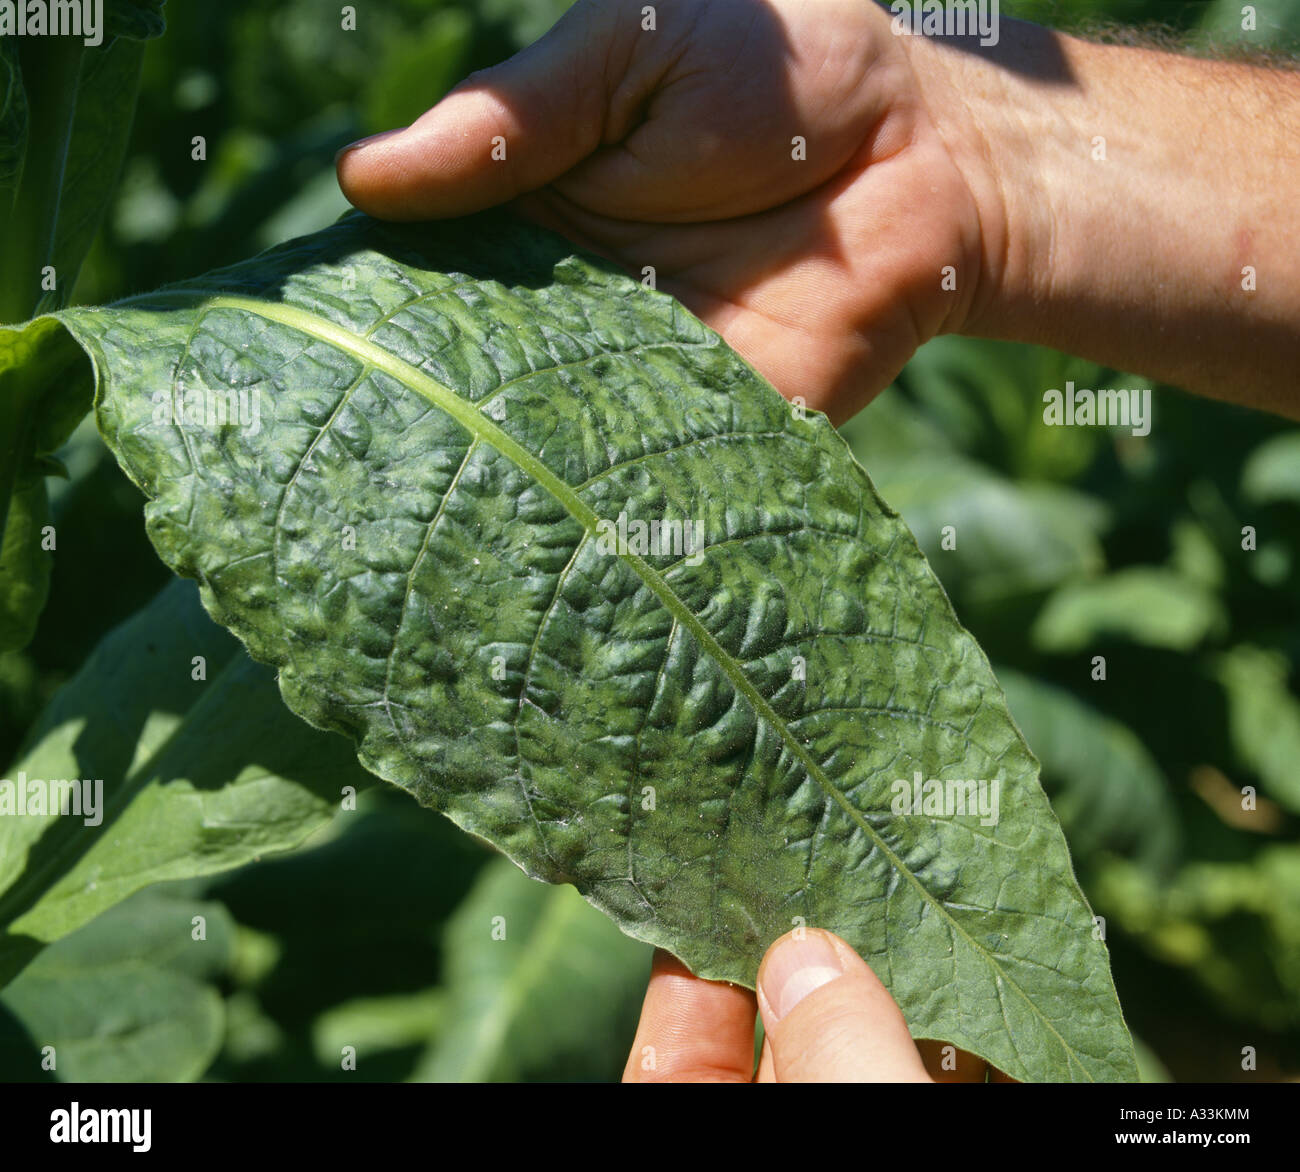 Tobacco Mosaic Virus Marmor Tabaci Top Side Of Leaf